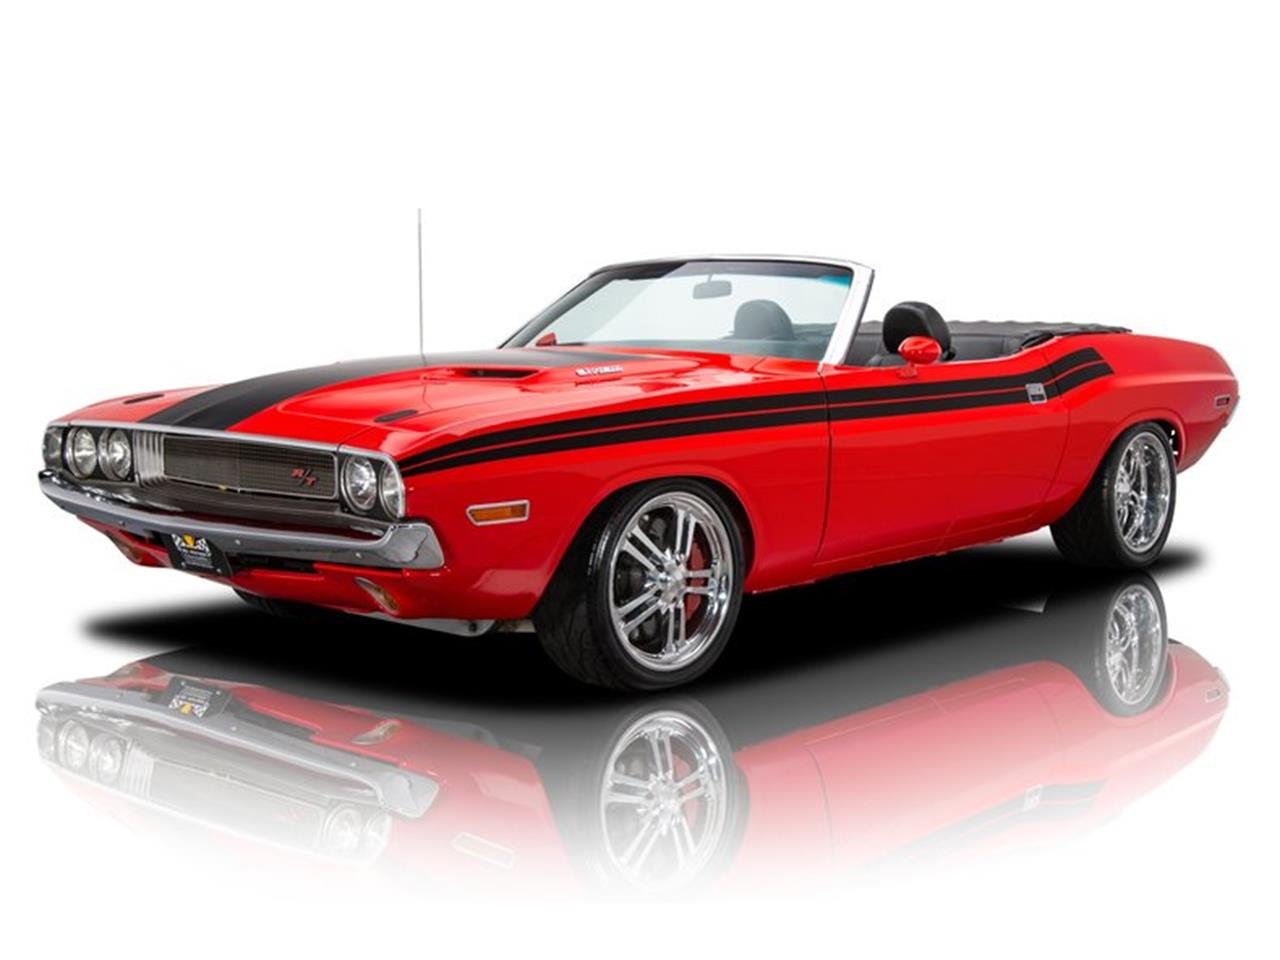 Large Picture of '70 Challenger R/T located in North Carolina - $89,900.00 - F9K4